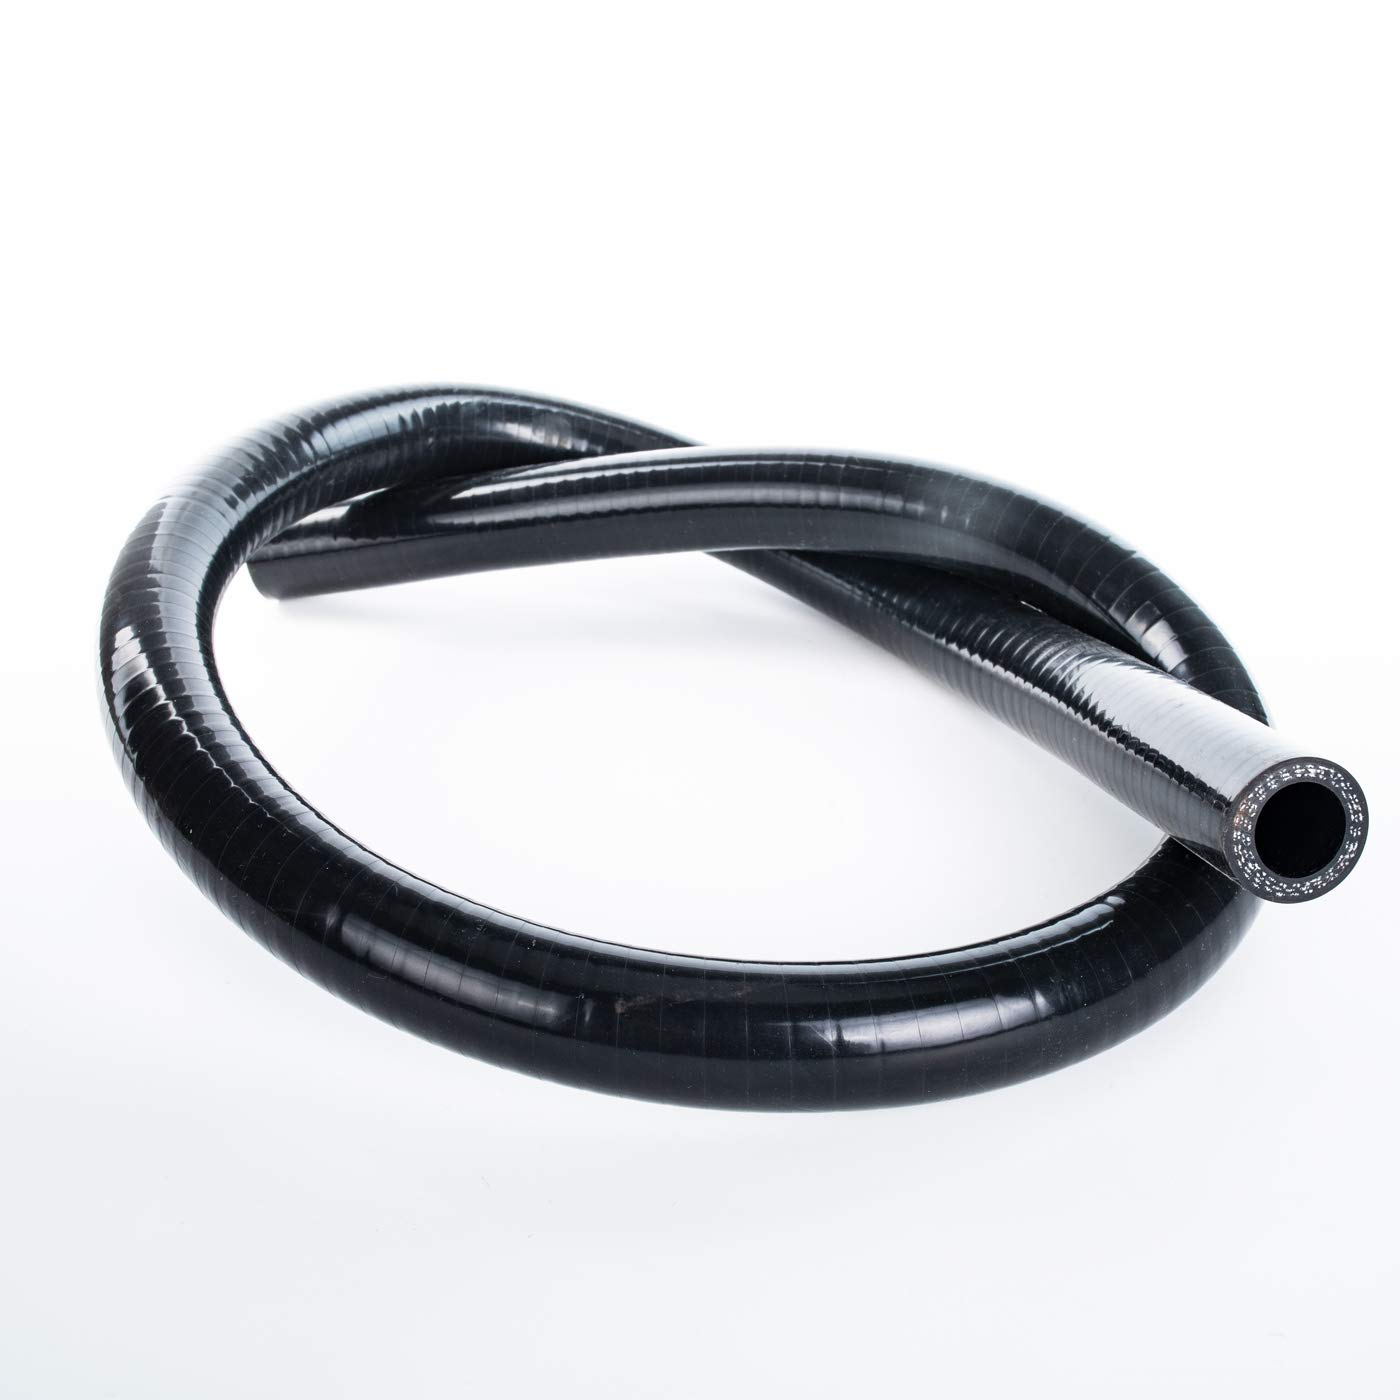 Black 3-Ply Reinforced Universal Automotive Pure Silicone Hose 4.5mm Wall Thickness 0.18 45 Degree Elbow Coupler 90mm 51mm ID 2 80 PSI Maximum Pressure No Logo Leg Length 3.5